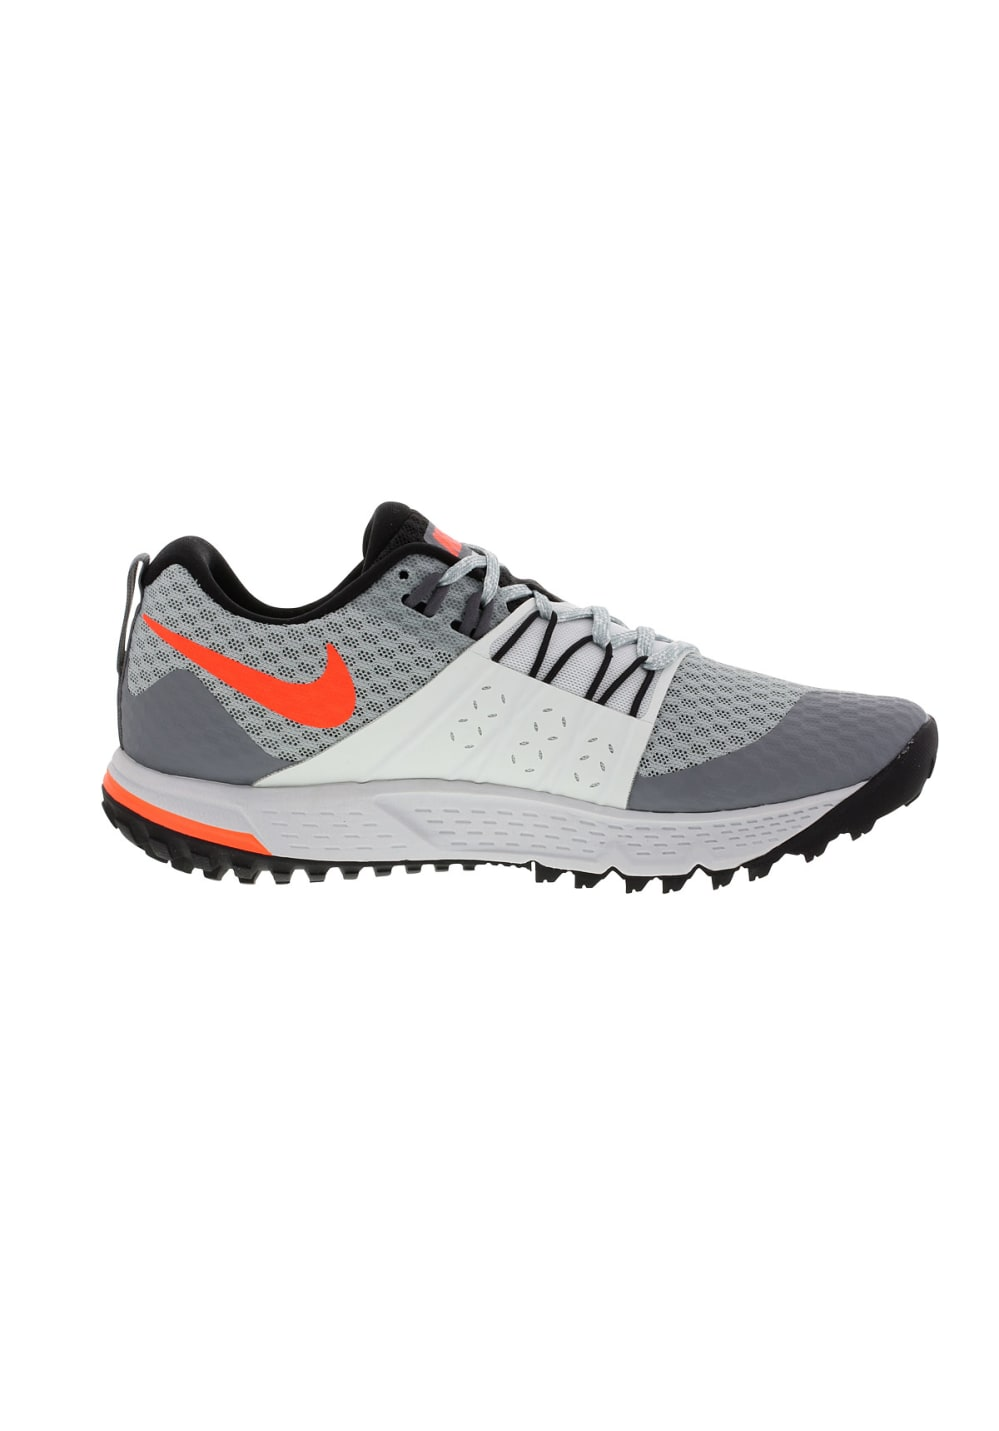 Nike Air Zoom Wildhorse 4 - Running shoes for Women - Grey  2637ecb7cd